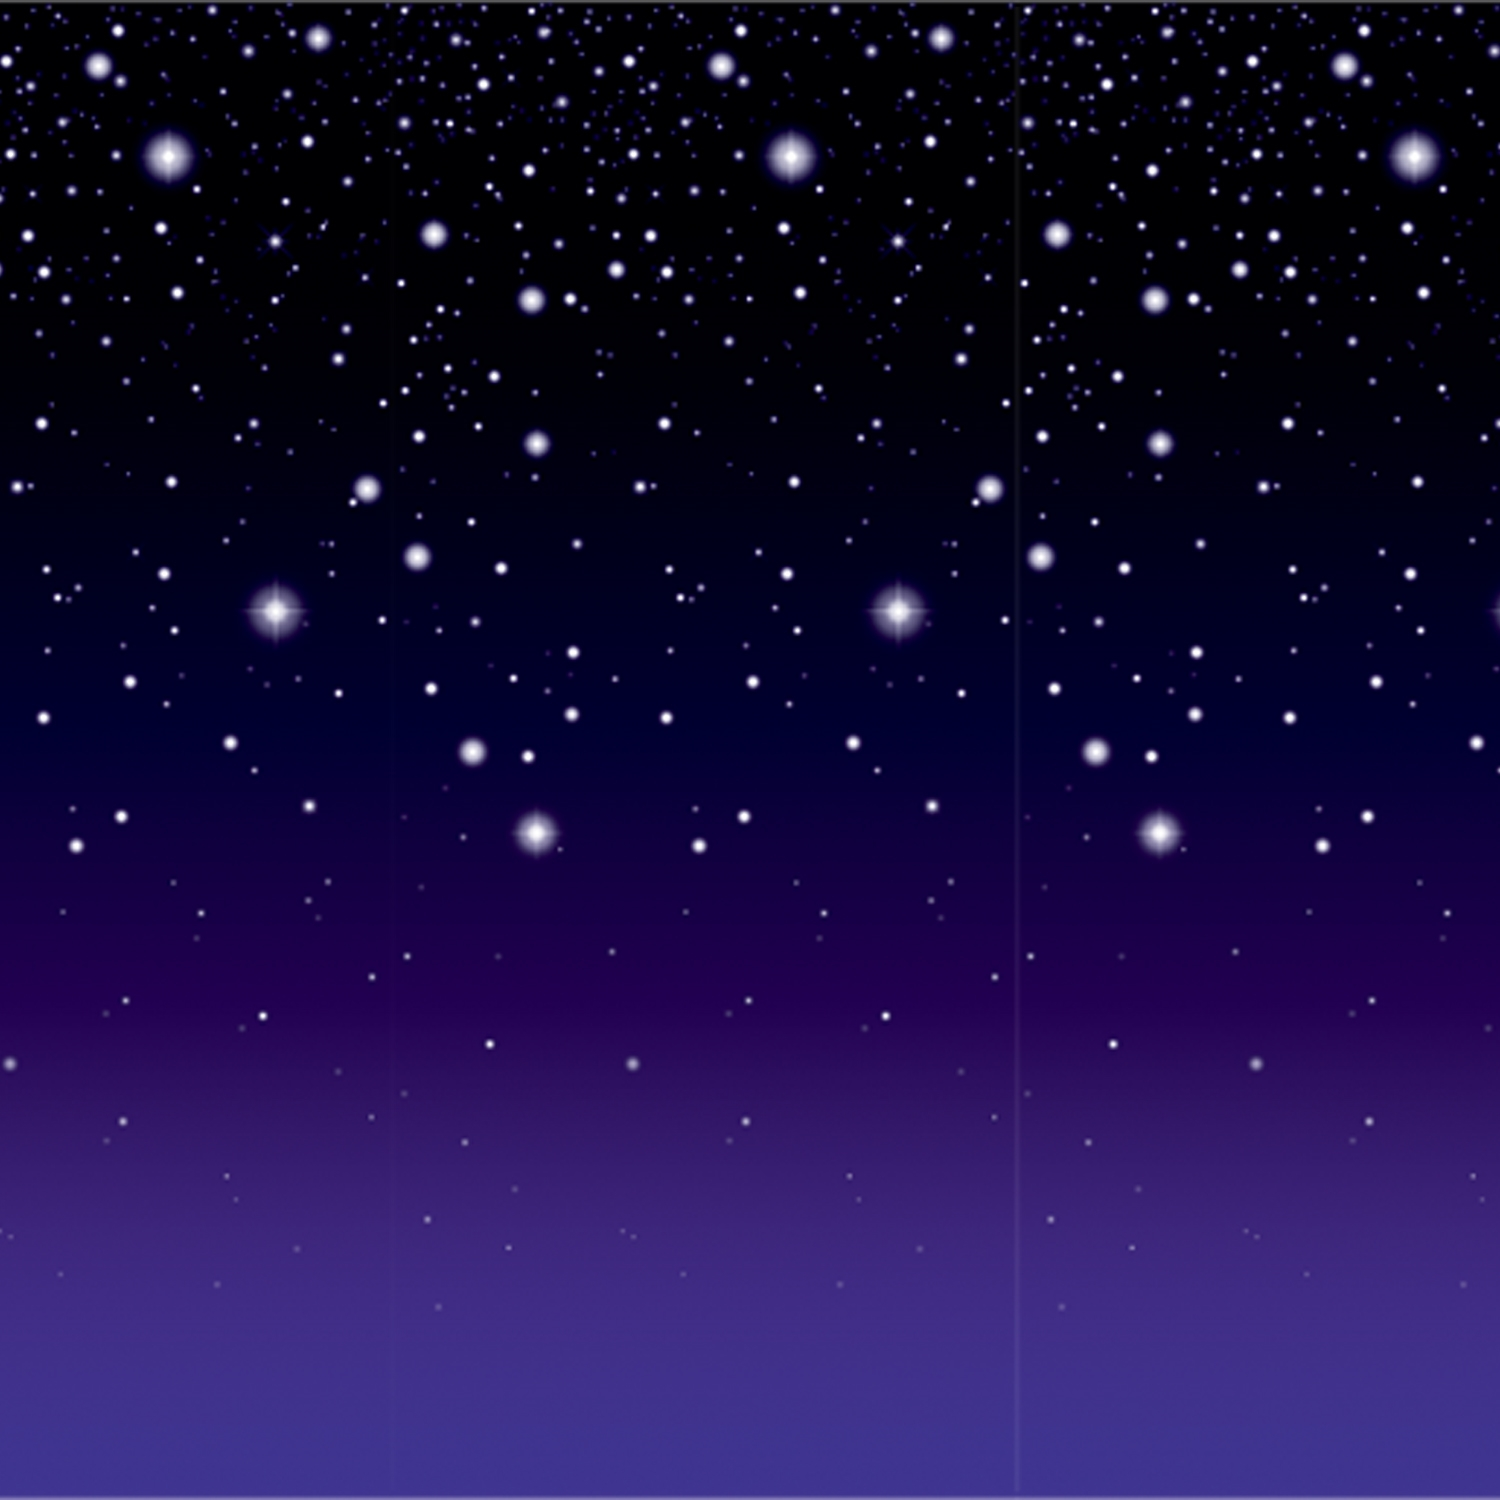 Starry night photo backdrop with soft purple on the bottom and dark black with stars on the top.